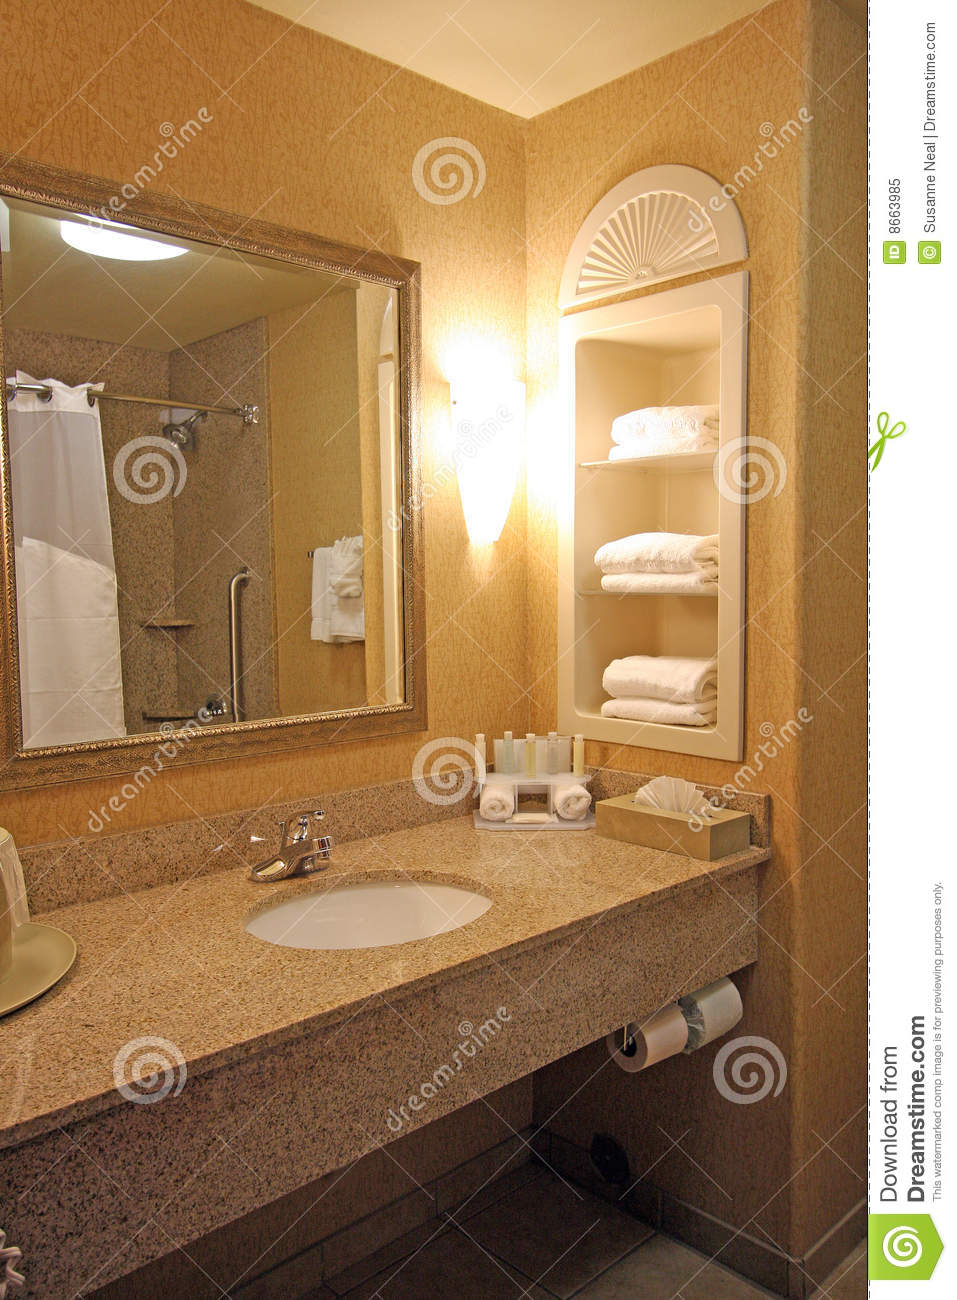 Hotel bathroom sink area royalty free stock photo image for Mirror hotel